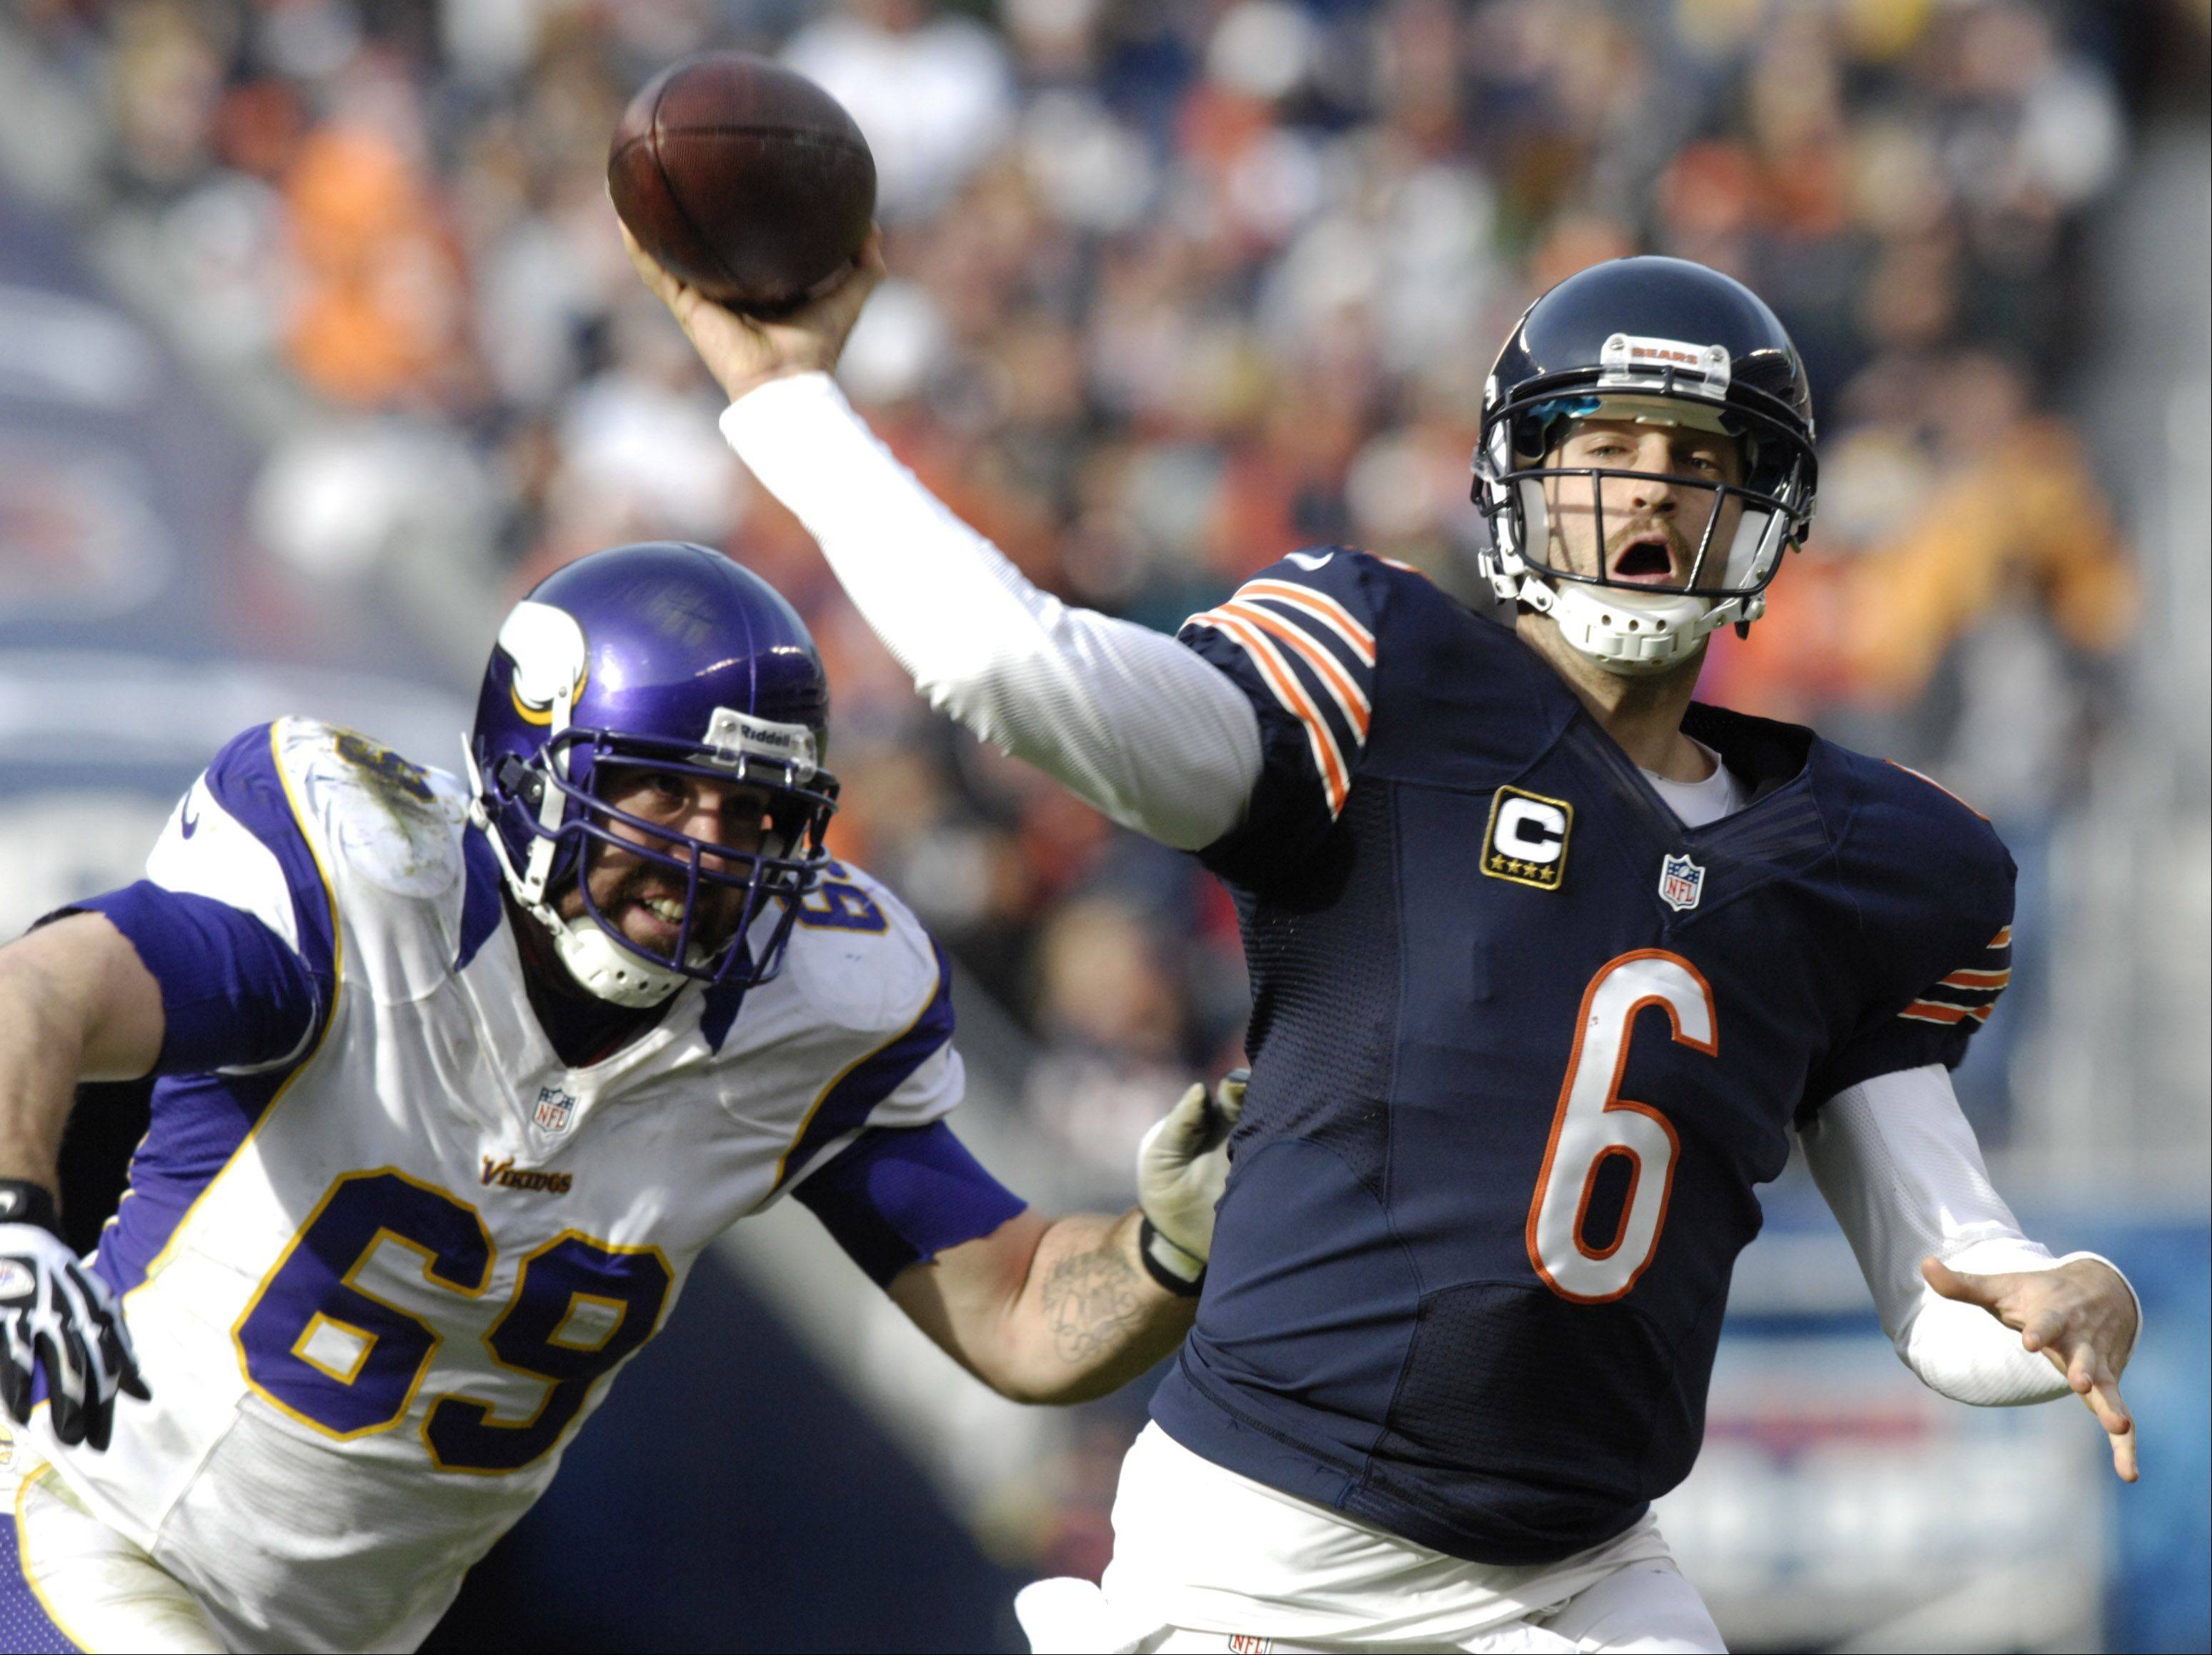 Chicago Bears quarterback Jay Cutler throws a second-quarter touchdown pass to tight end Matt Spaeth while being pursued by Minnesota Vikings defensive tackle Jared Allen at Soldier Field Sunday.